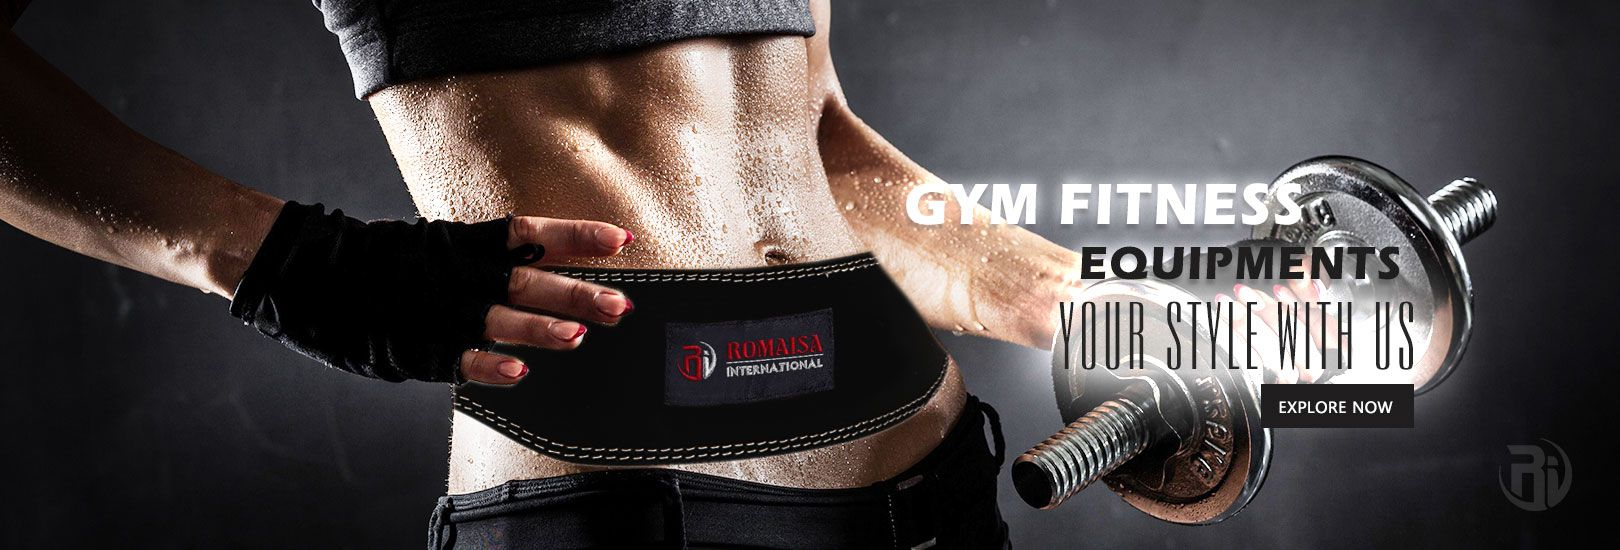 fitness weightlifting gloves and belts